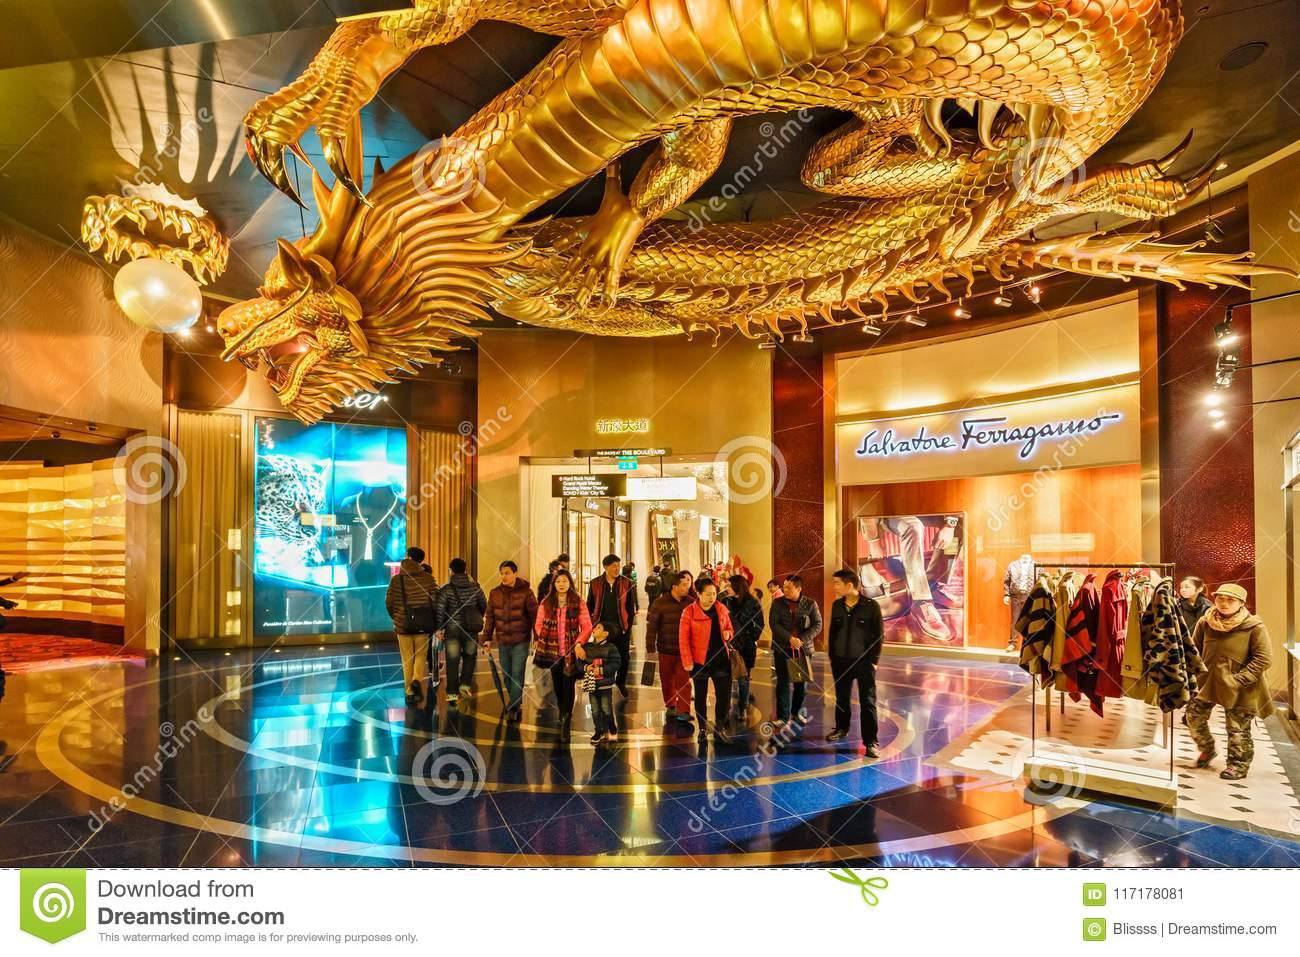 City Of Dreams Casino Interior In Macao  Metal Sculpture Of Golden